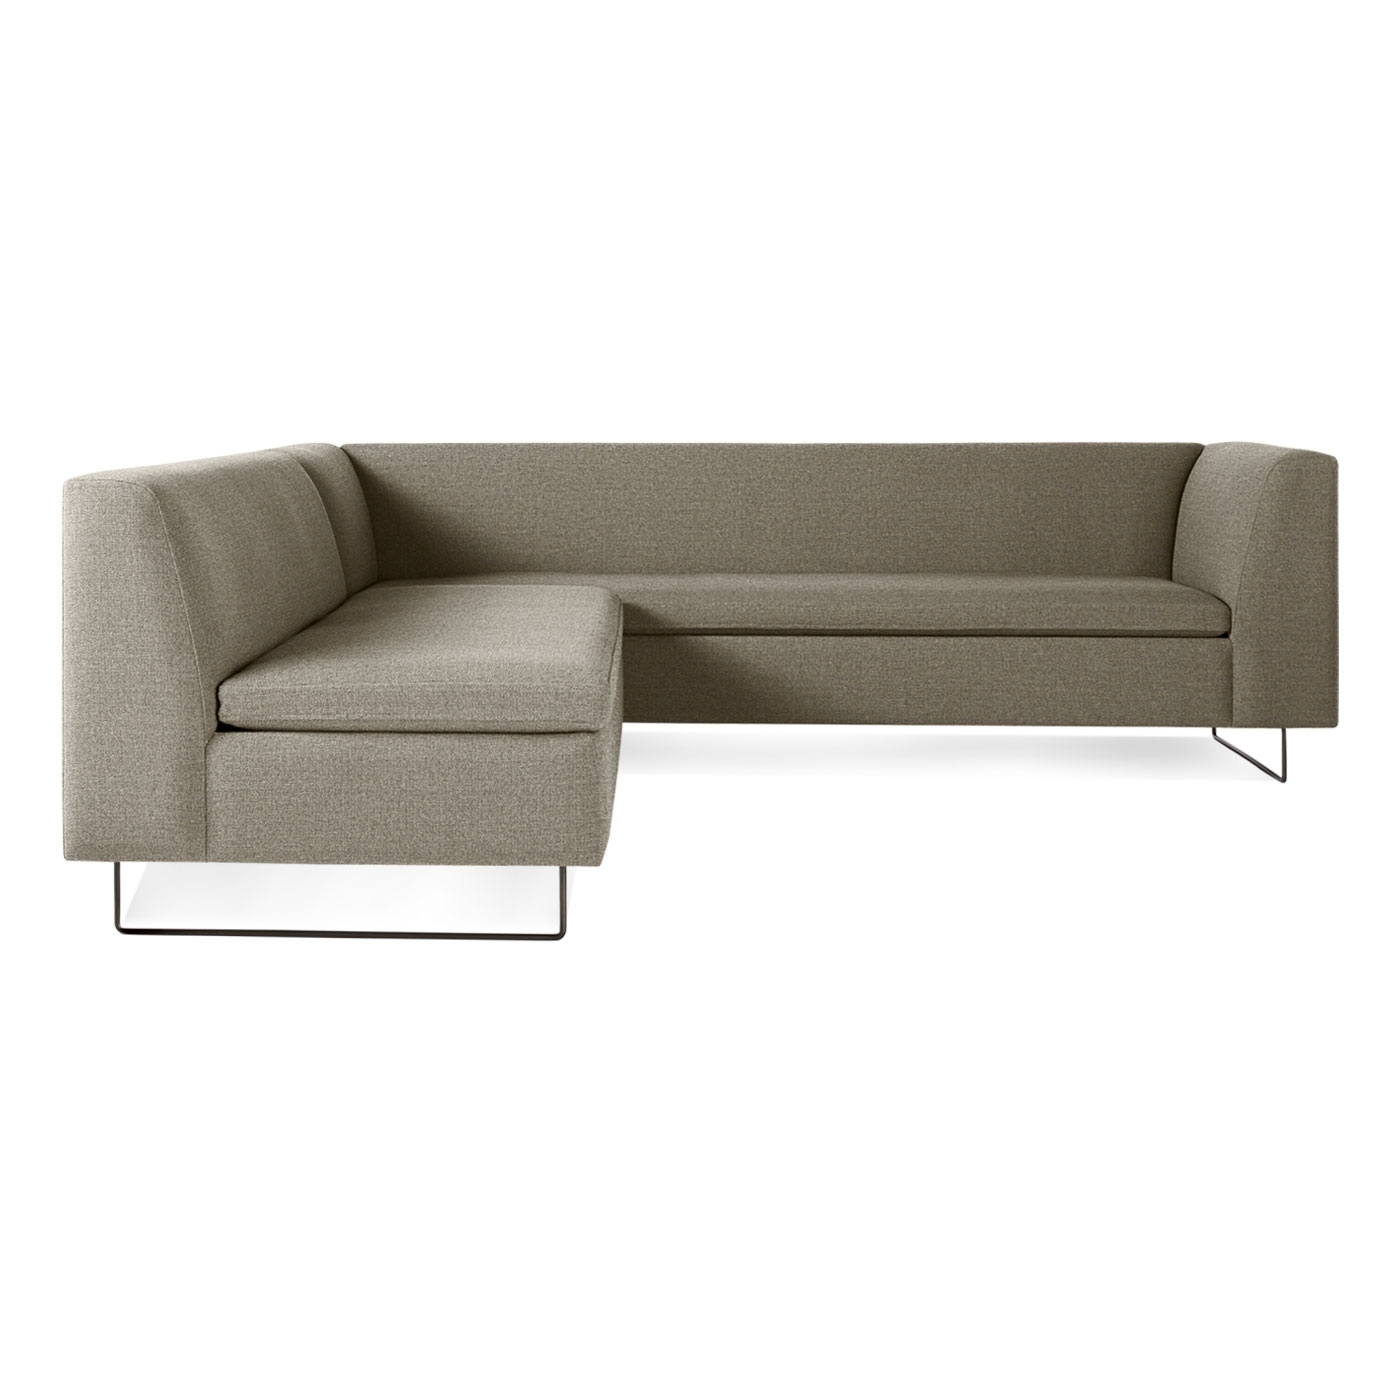 Latest Bonnie & Clyde Modular Fabric Sectional Sofa (View 9 of 15)